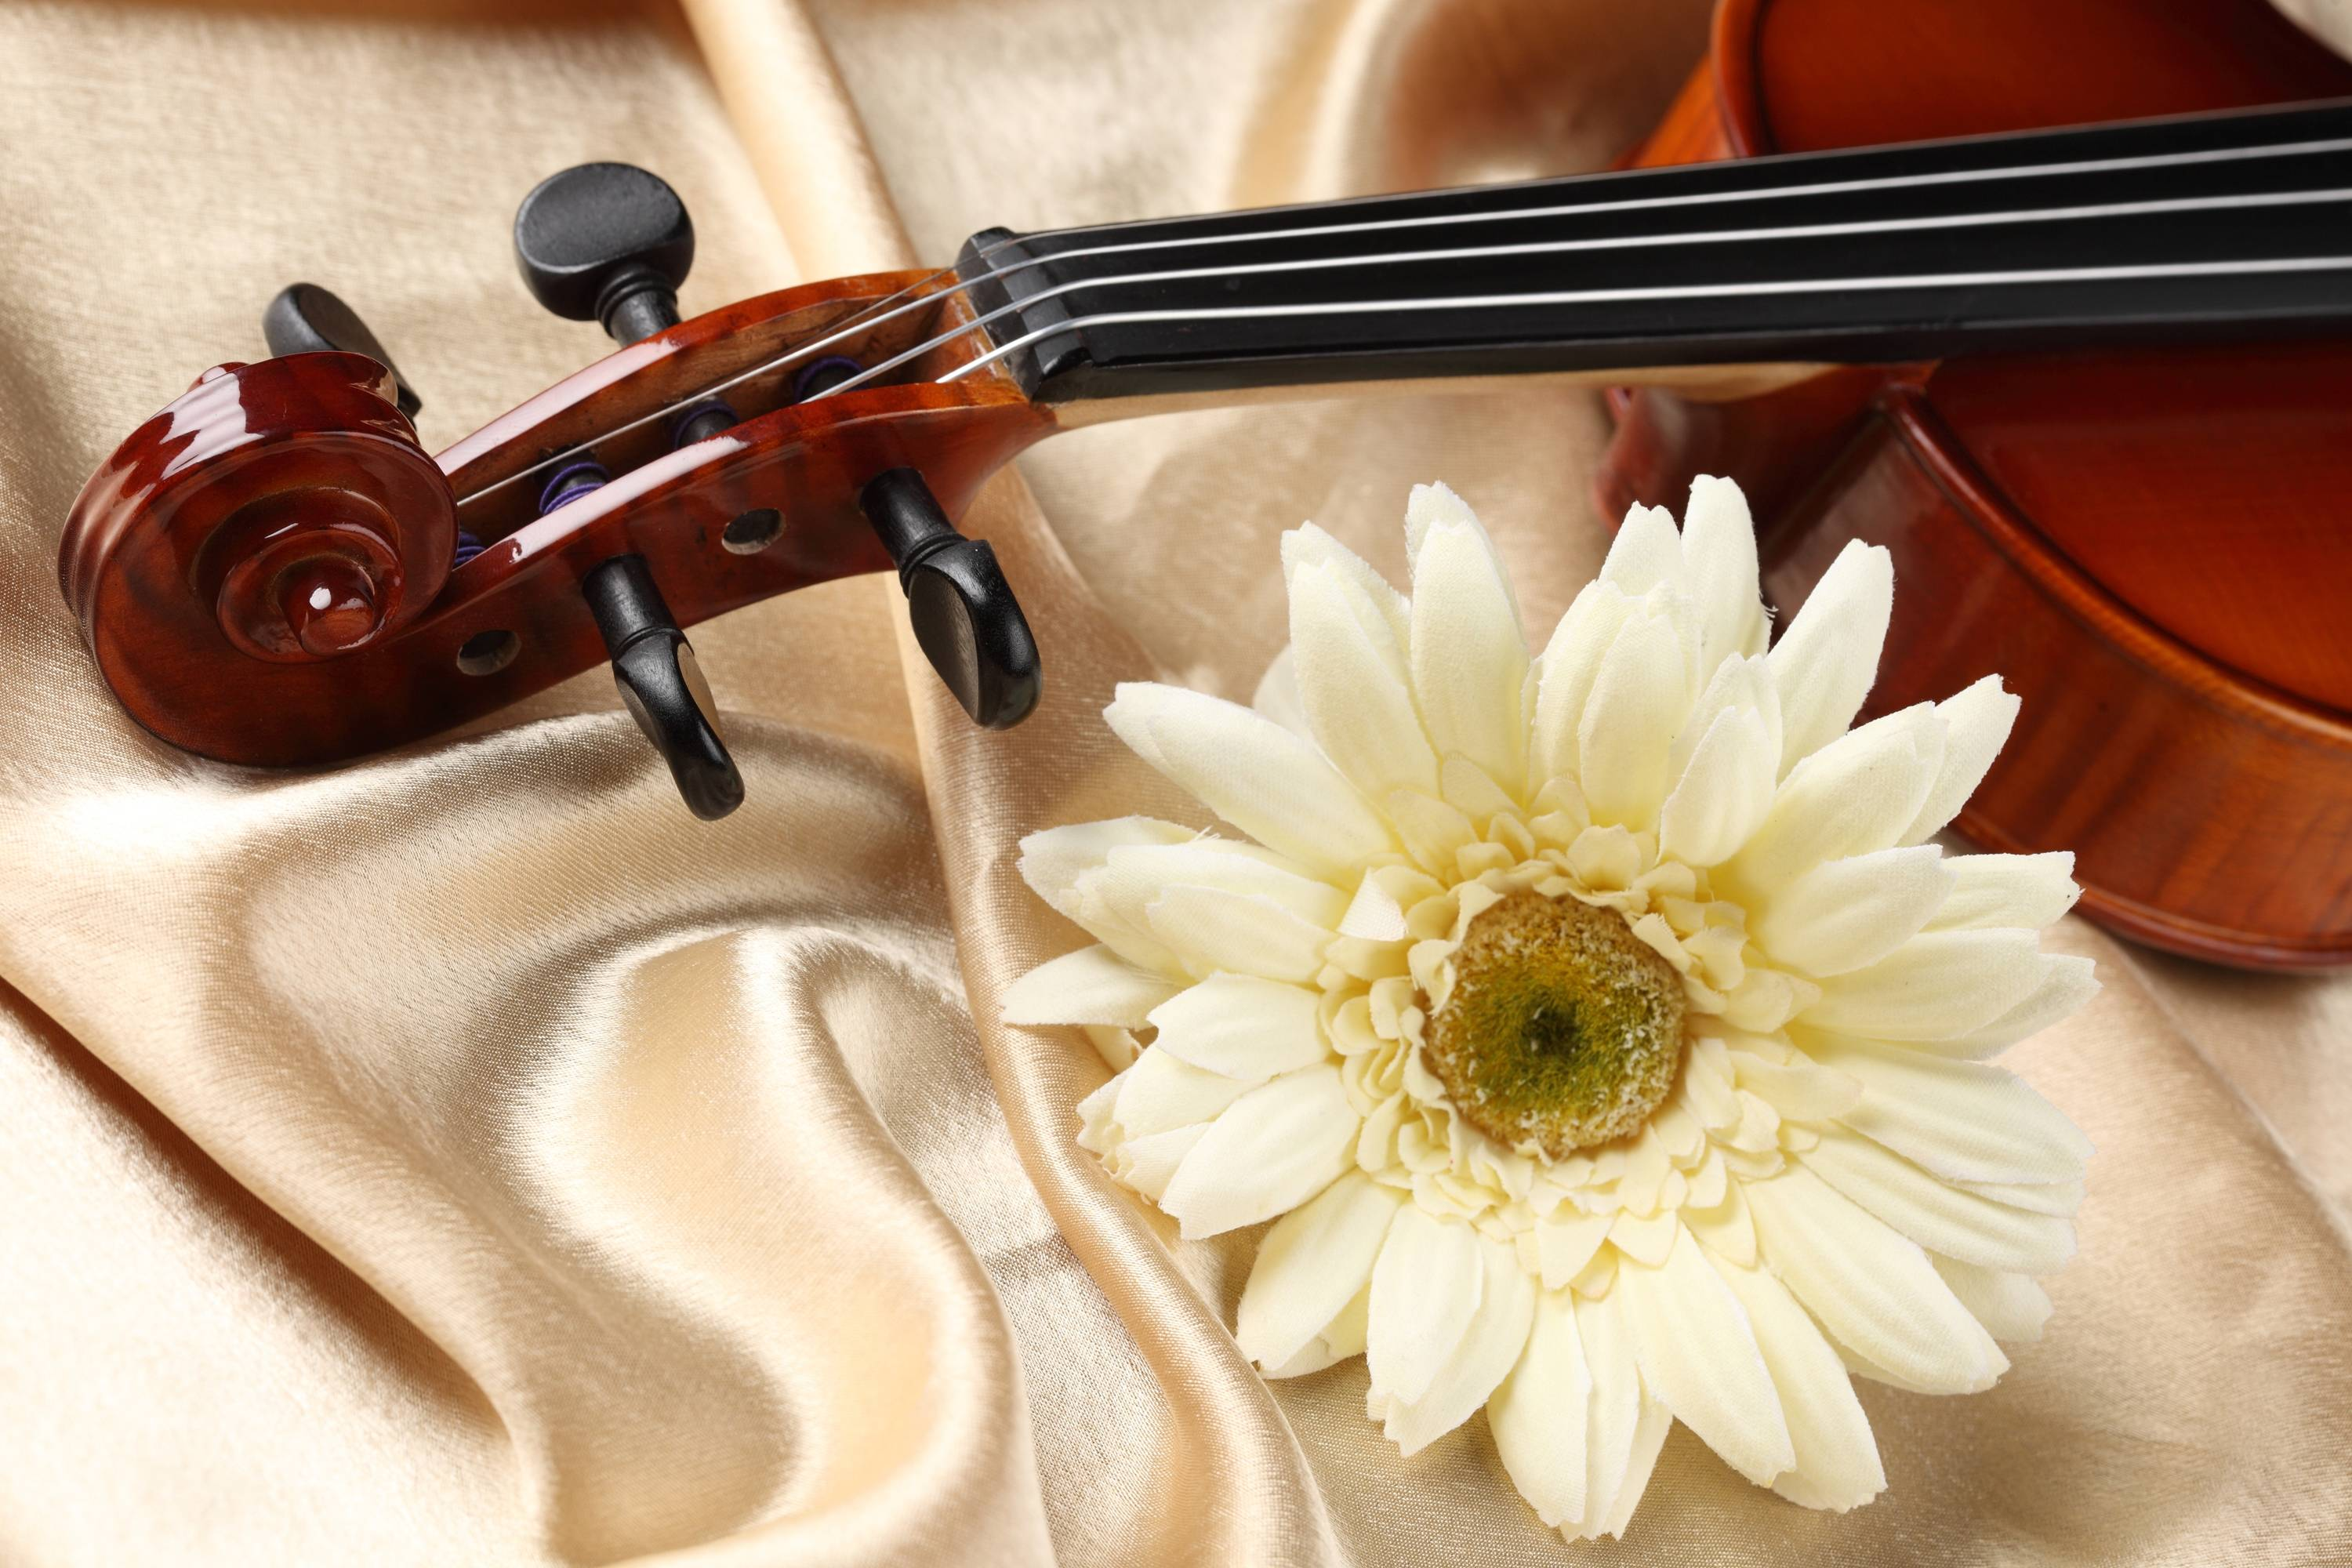 Violin Computer Wallpapers, Desktop Backgrounds 3000x2000 Id: 102390